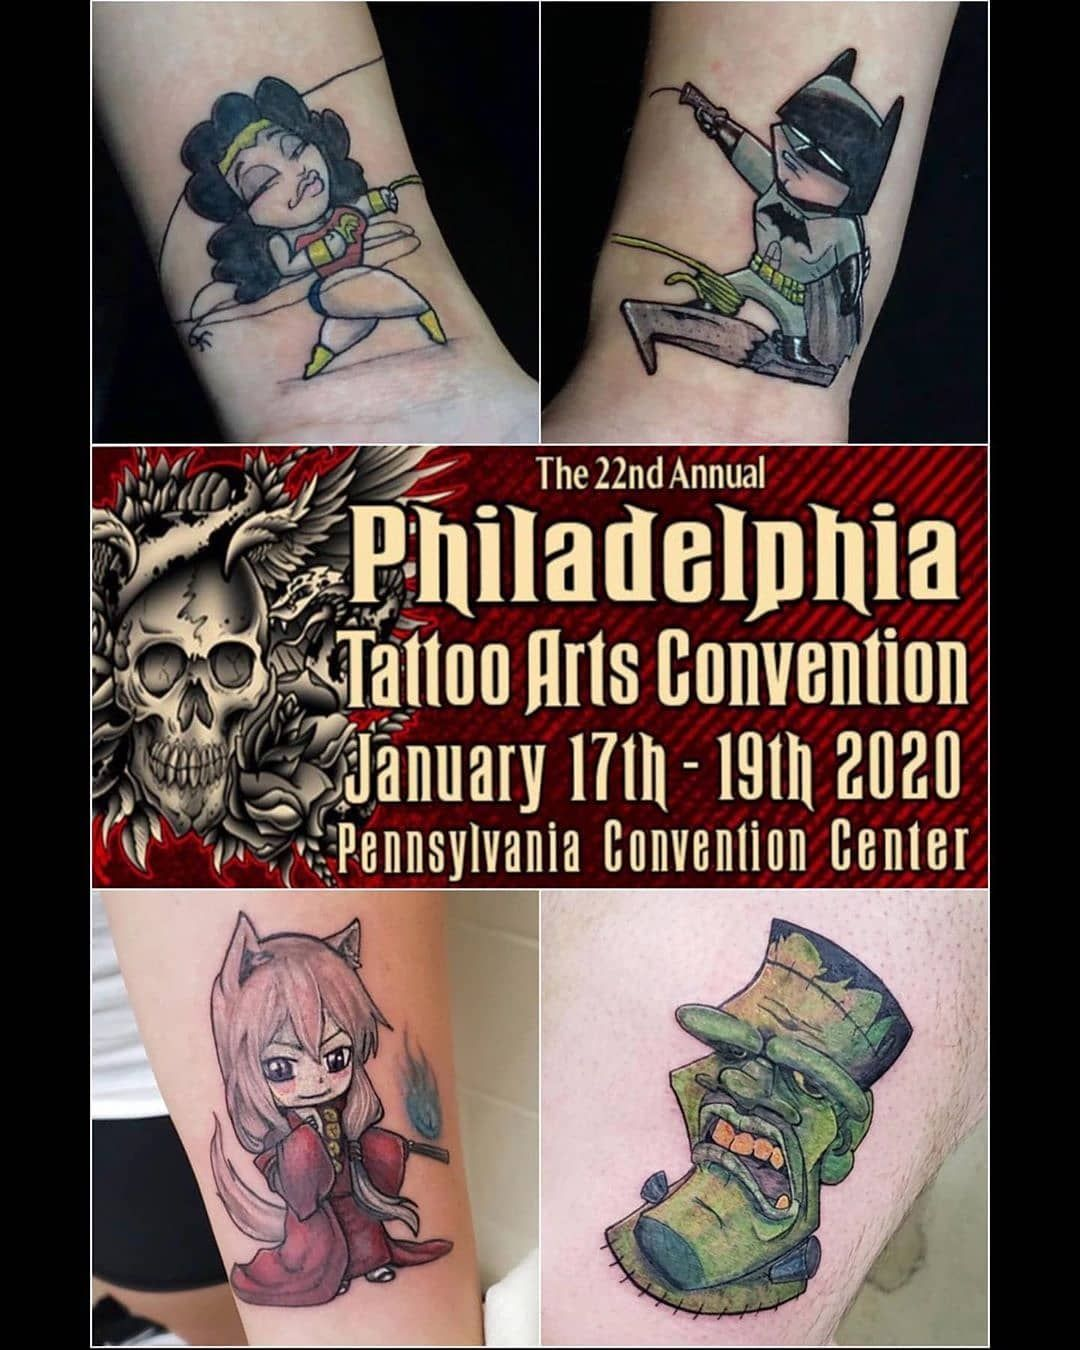 @haferks will be joining @villainarts for the 22nd Annual Philadelphia Tattoo Arts Convention January 17th - 19th...